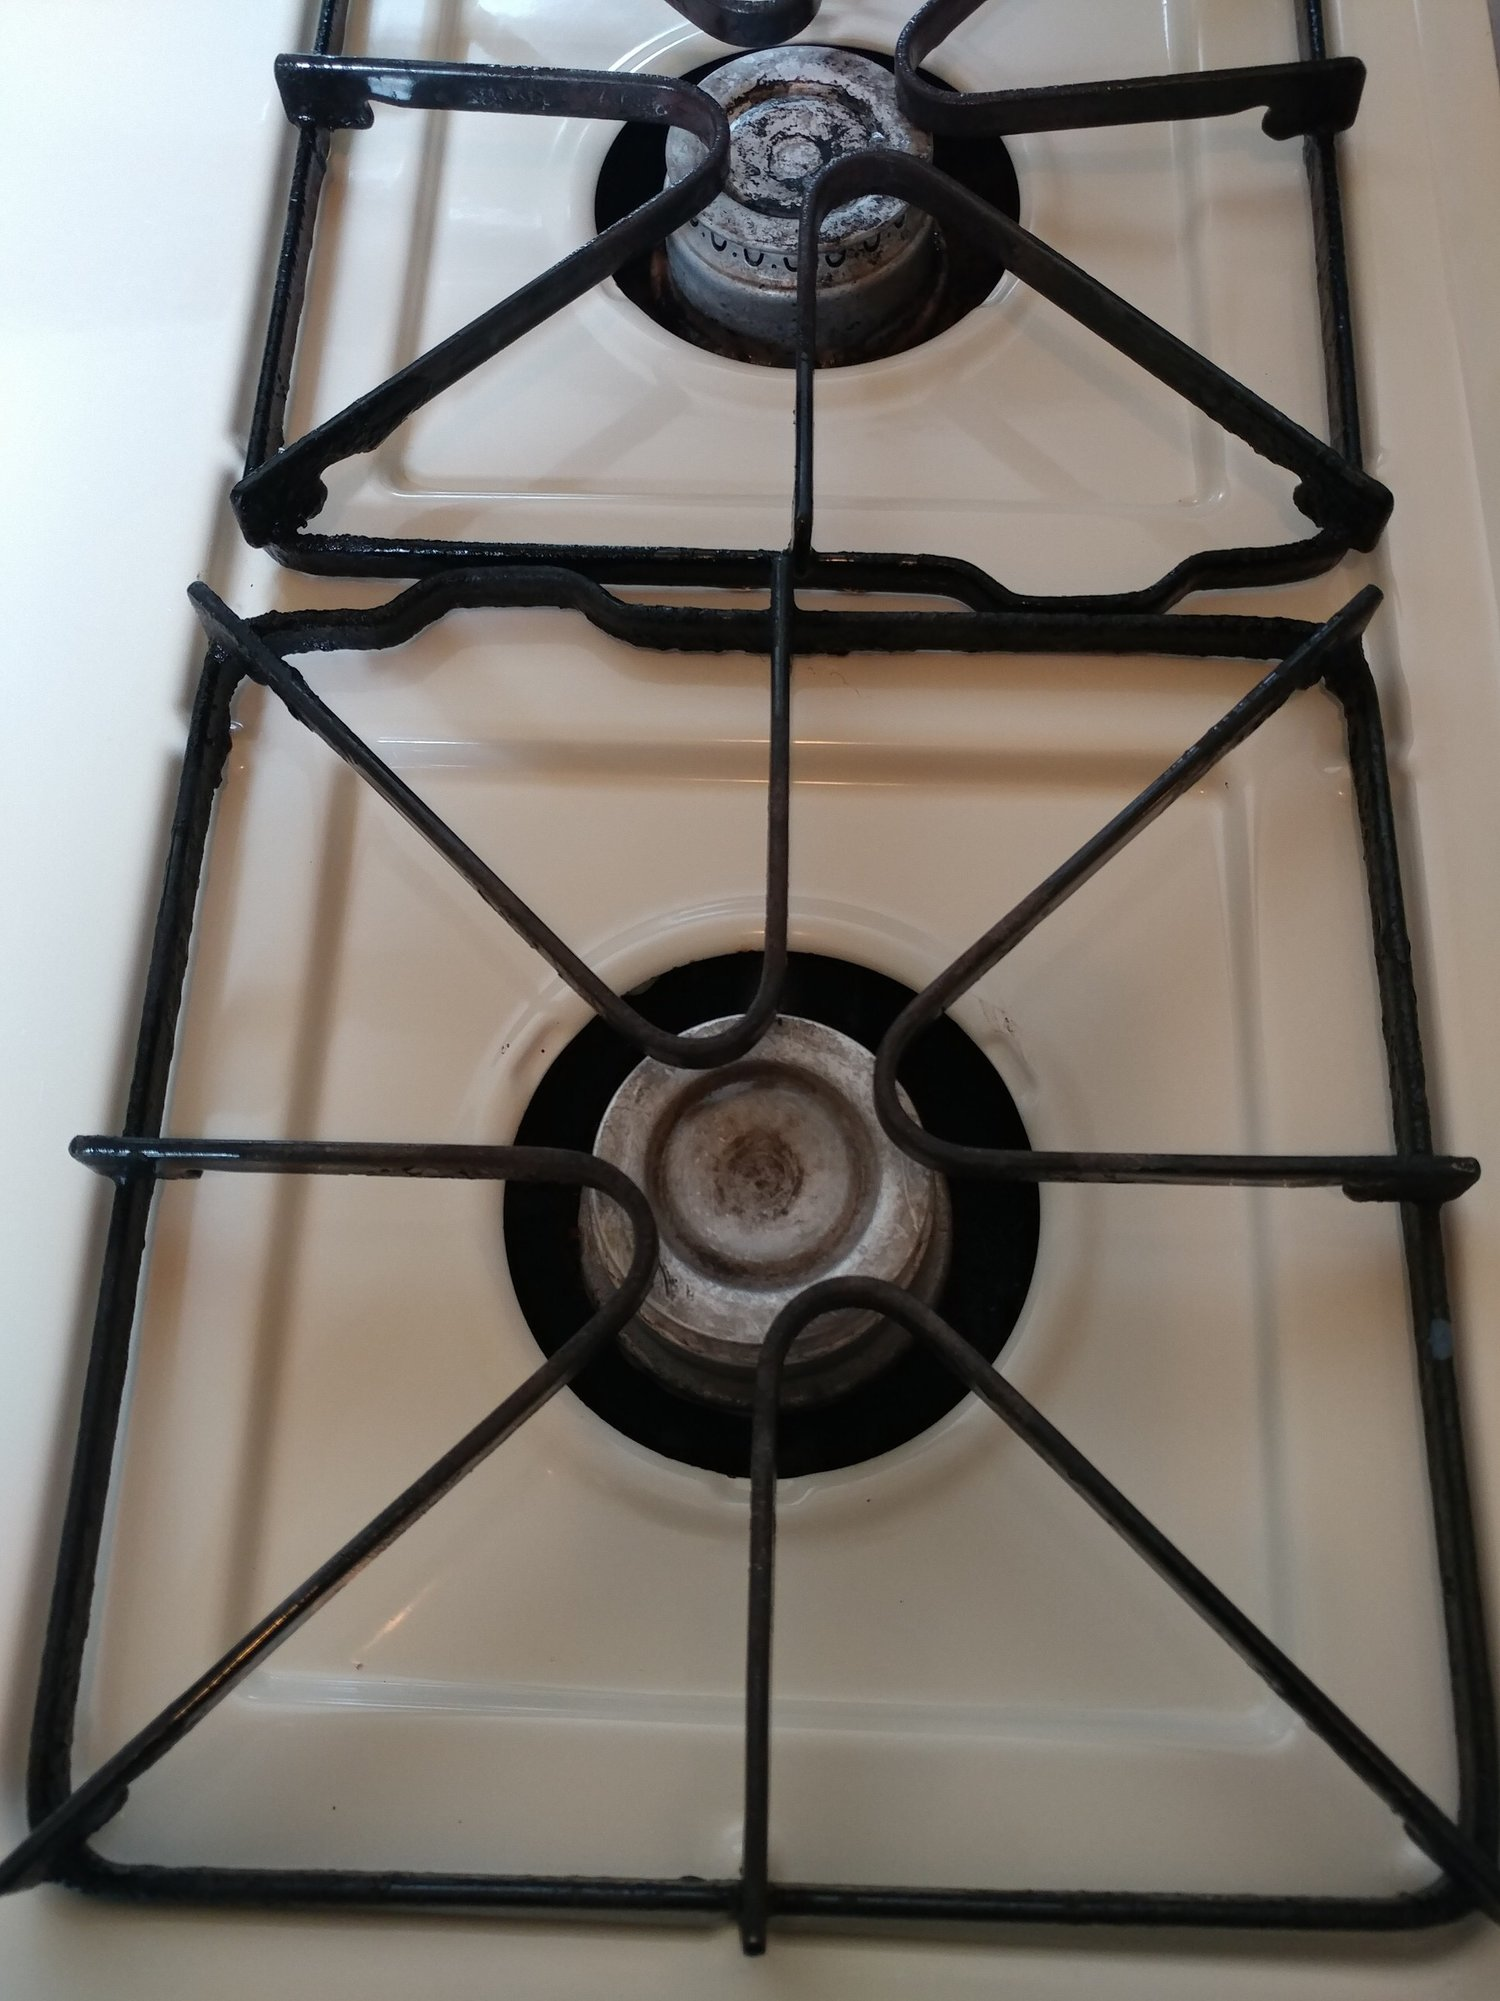 Stove Cooking Element - After